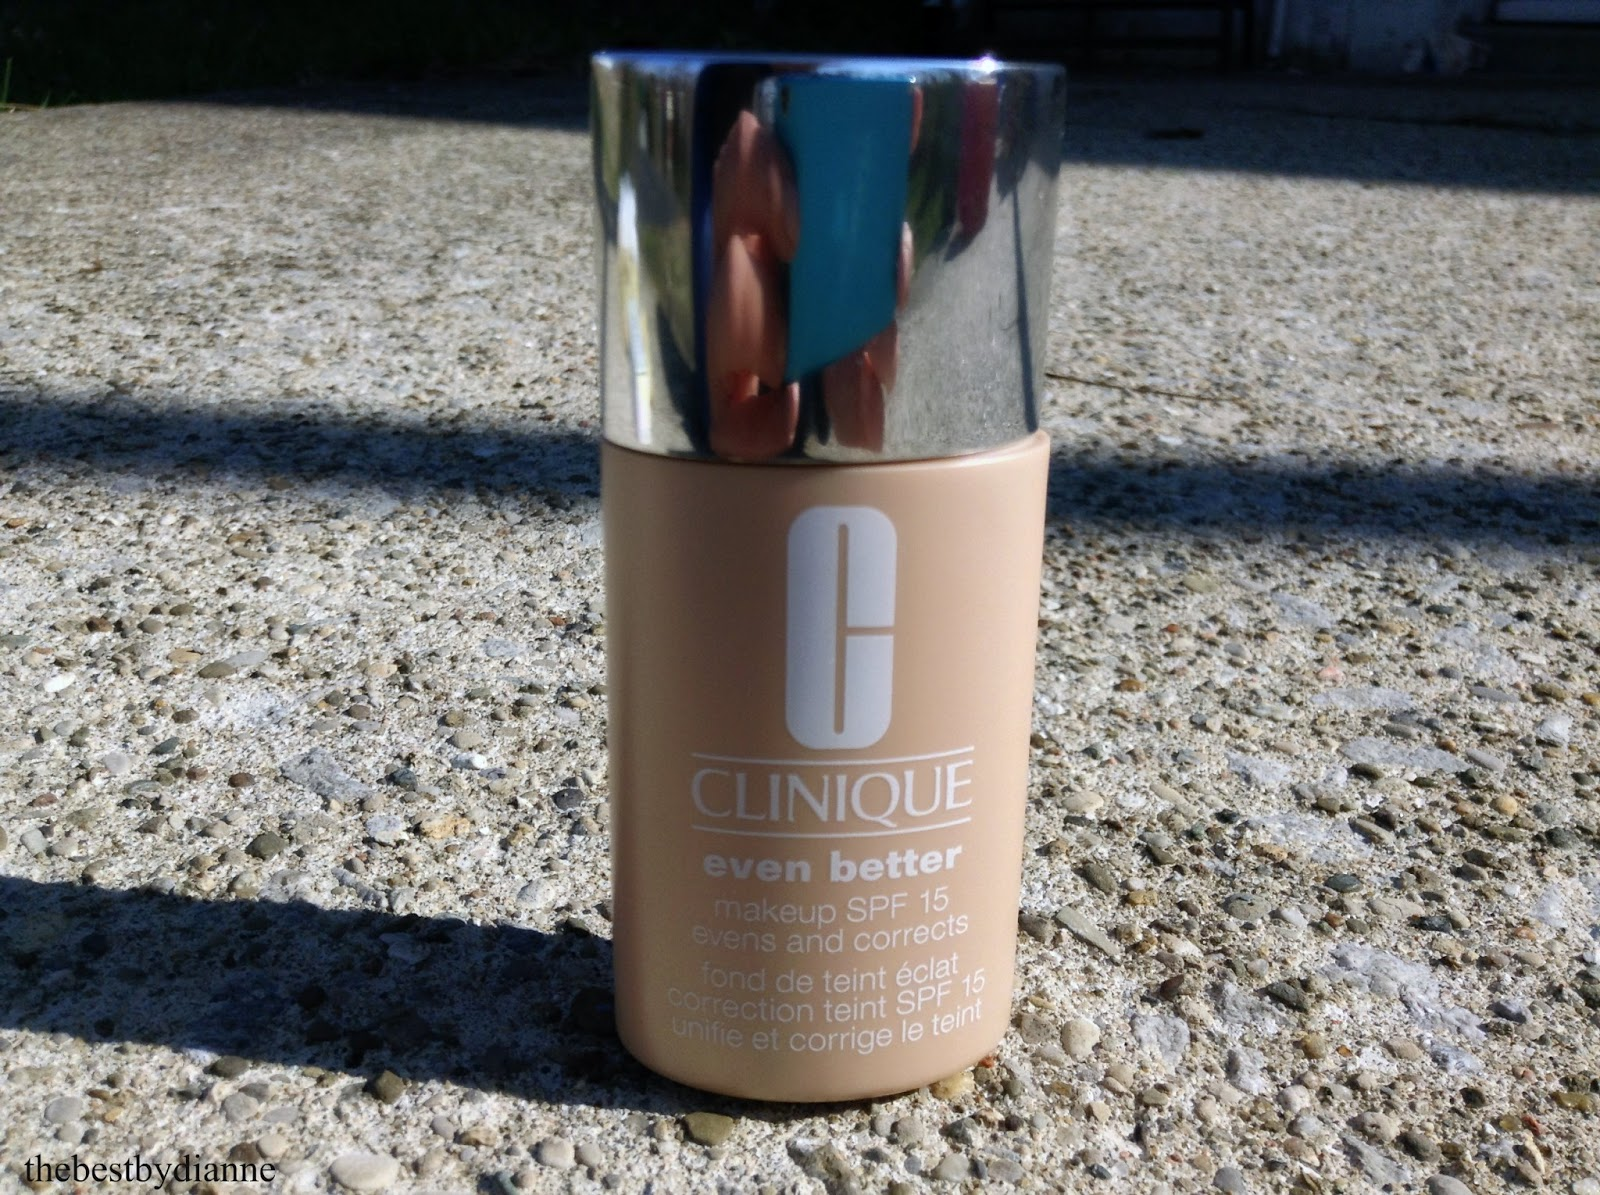 Clinique even better makeup foundation review swatches before - Clinique Even Better Foundation Review Before After Pics And Swatches